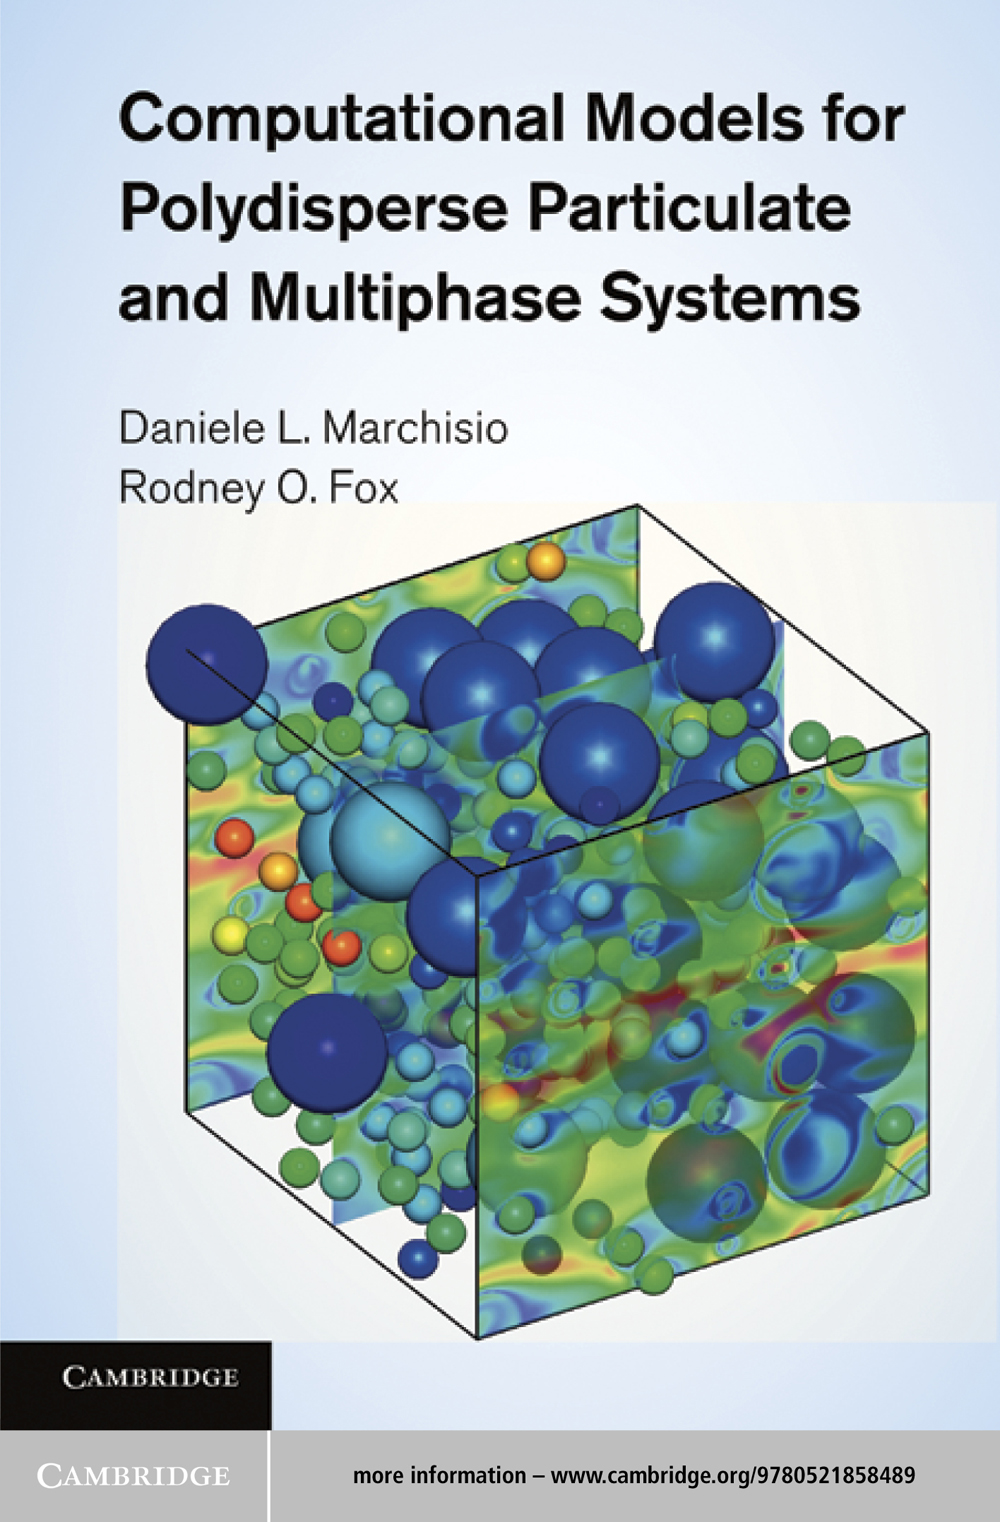 Computational Models for Polydisperse Particulate and Multiphase Systems